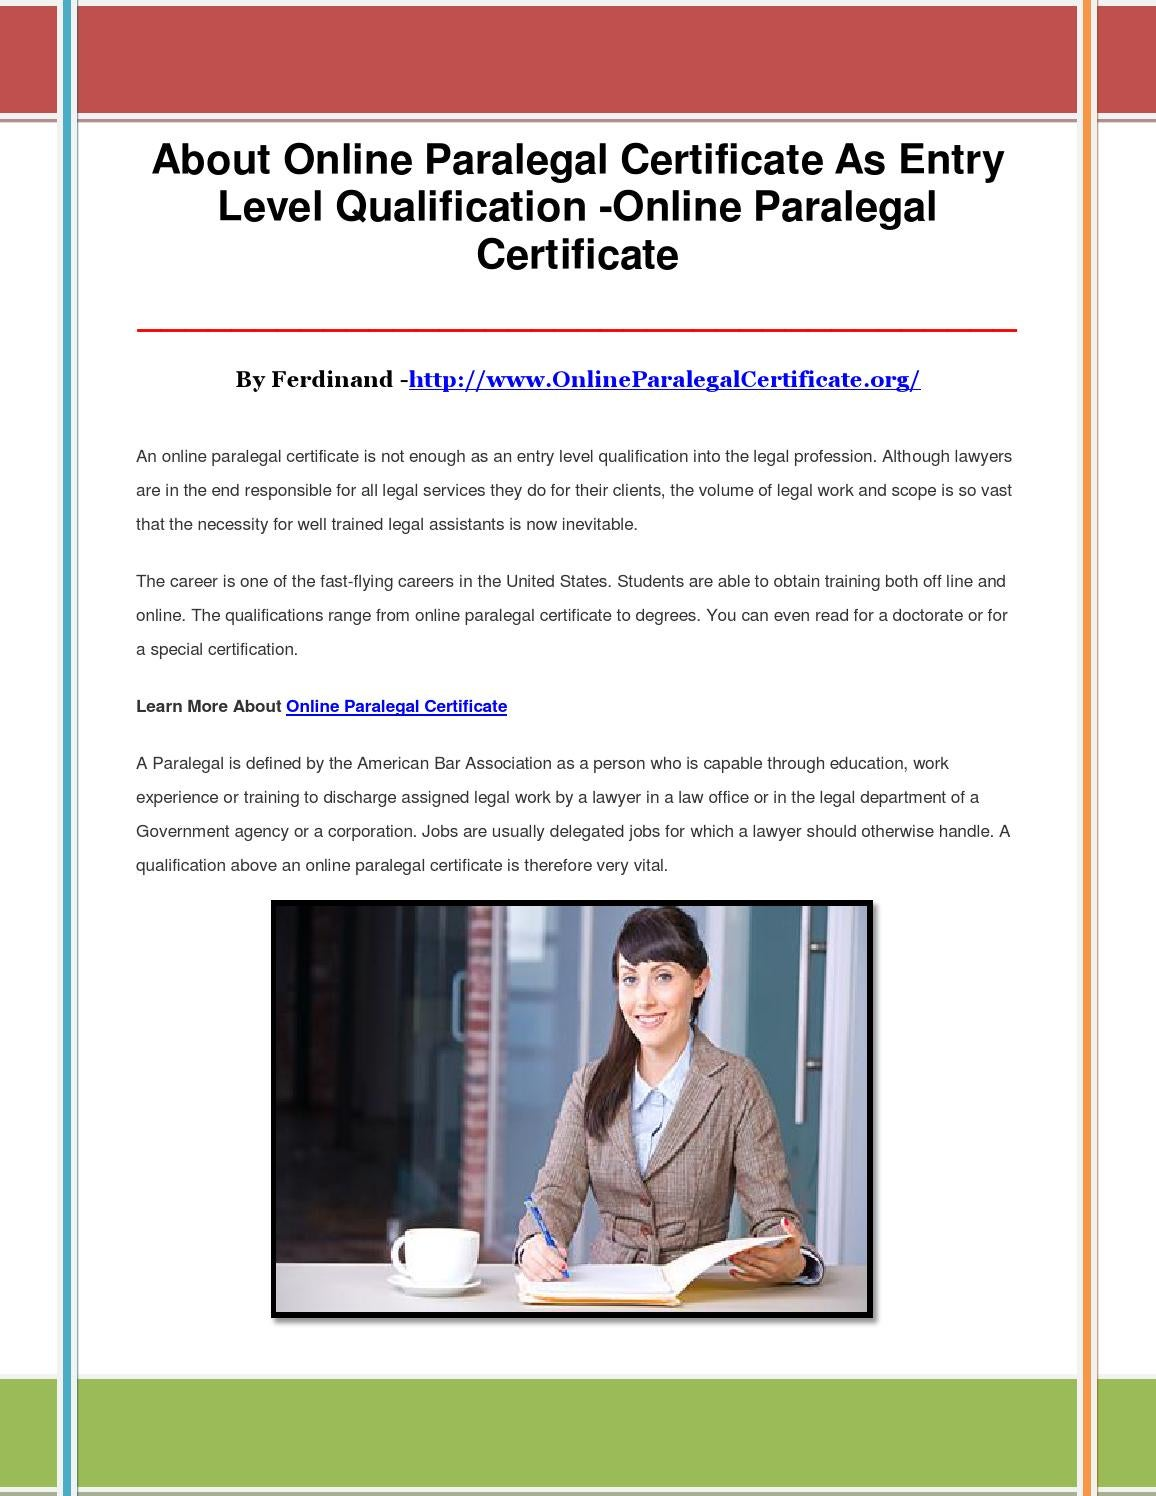 About Online Paralegal Certificate As Entry Level Qualification By